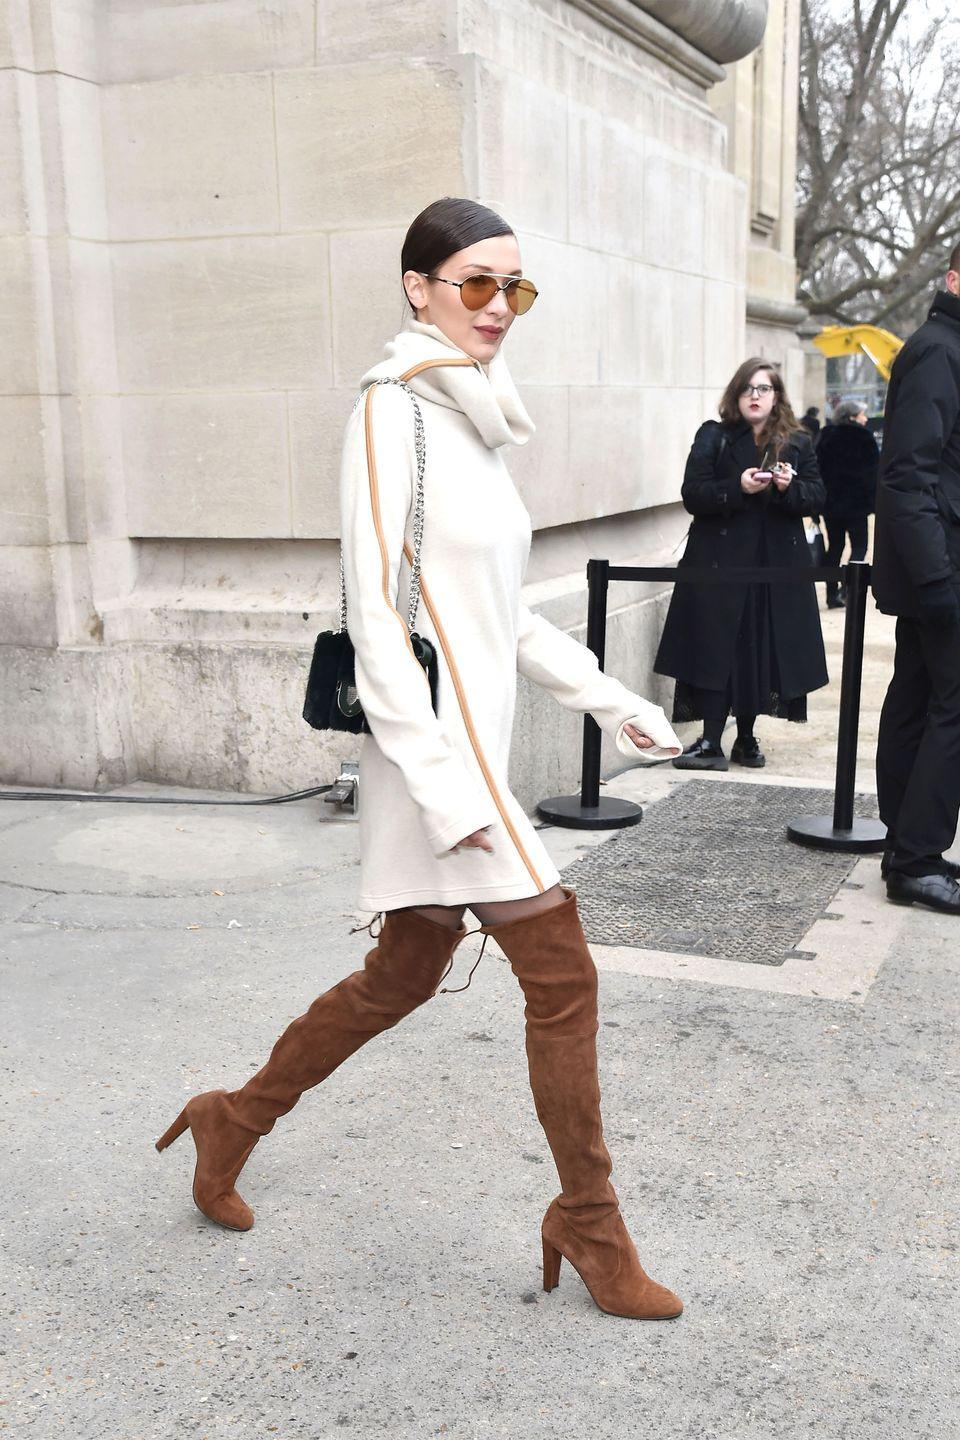 <p>In a Céline cream cowl neck sweater dress, Stuart Weitzman suede over-the-knee boots, Carrera aviator sunglasses and fur bag while leaving the Chanel couture show in Paris.</p>